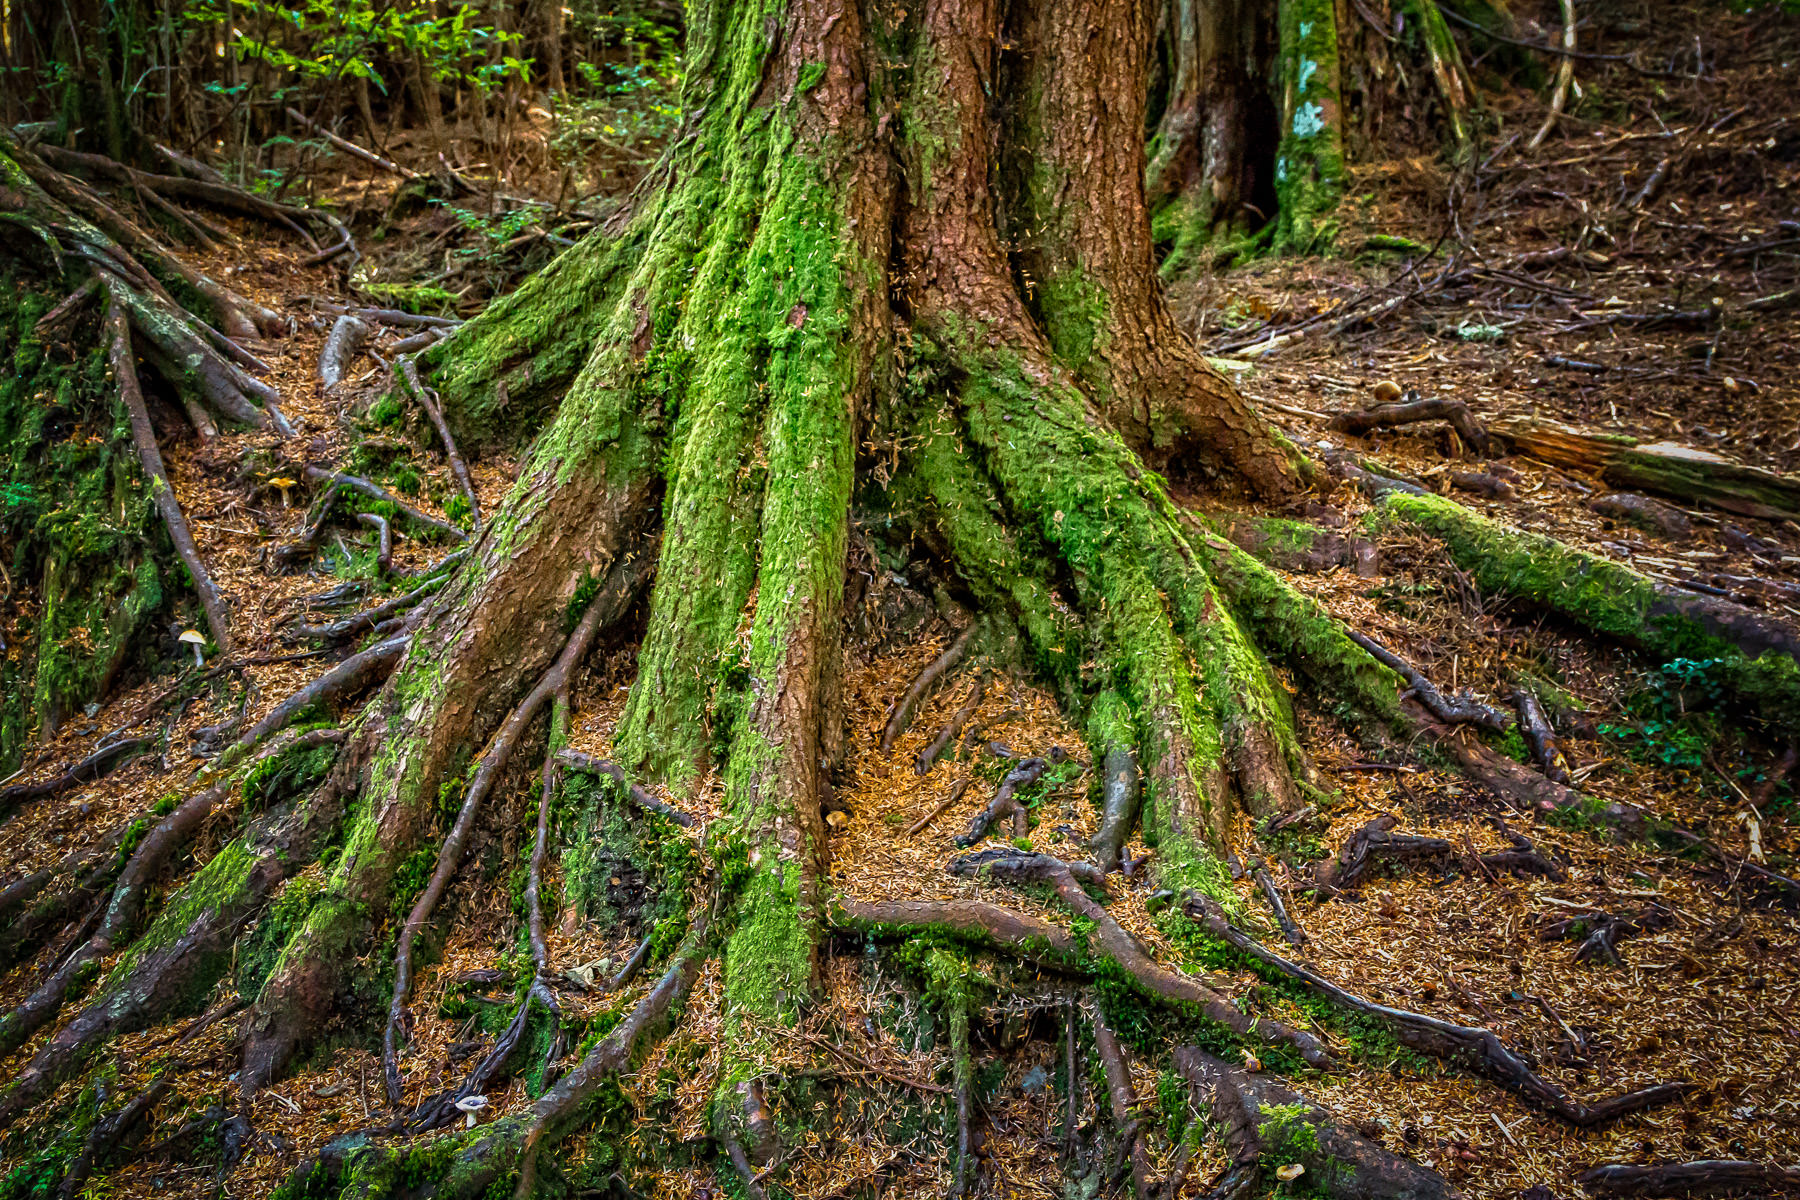 Moss-covered tree roots found at Totem Bight State Park in Ketchikan, Alaska.